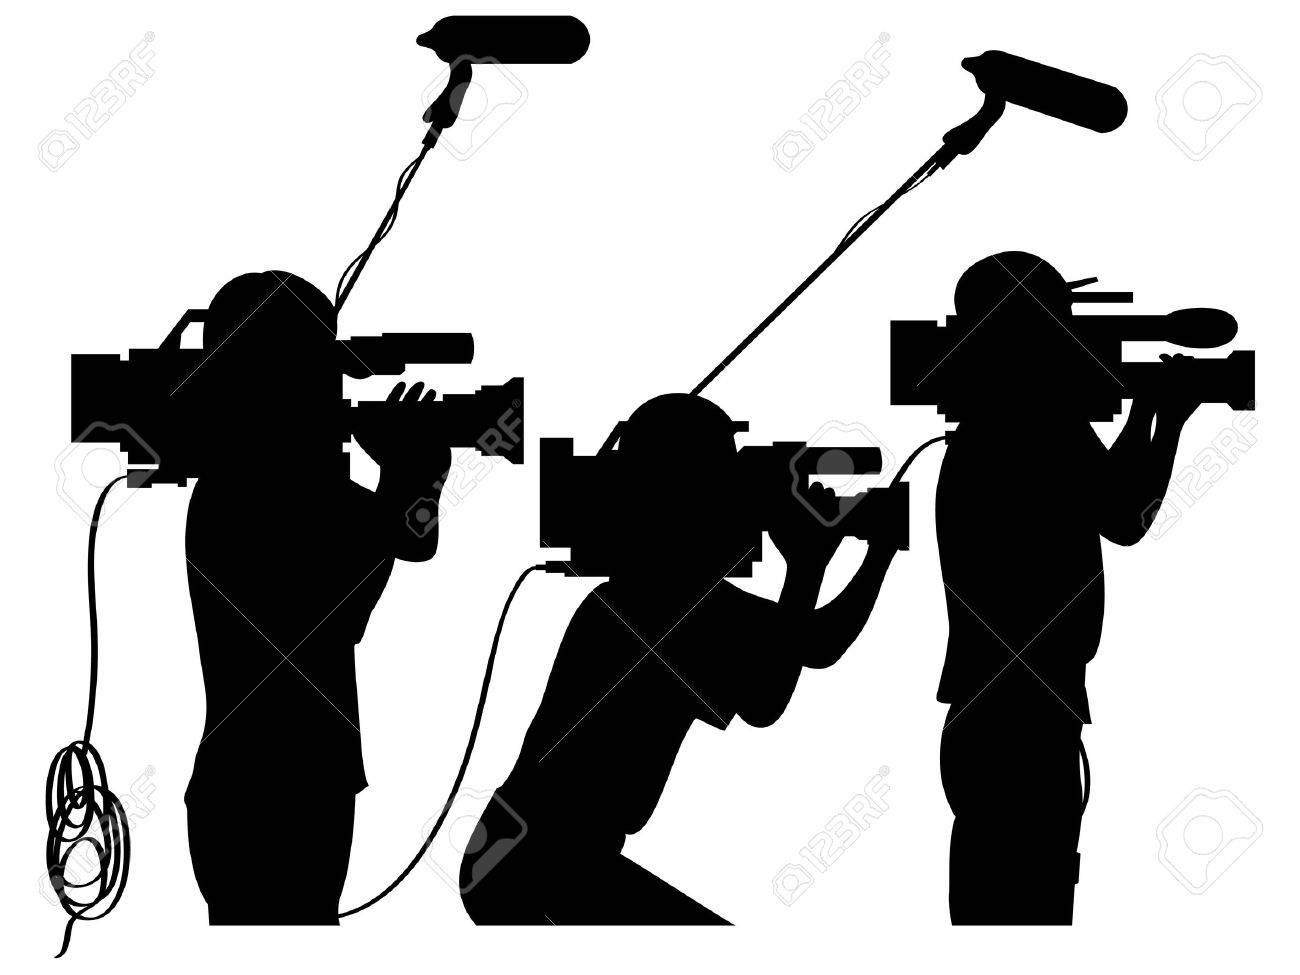 Cameraman at work silhouettes side view Stock Vector - 5566739